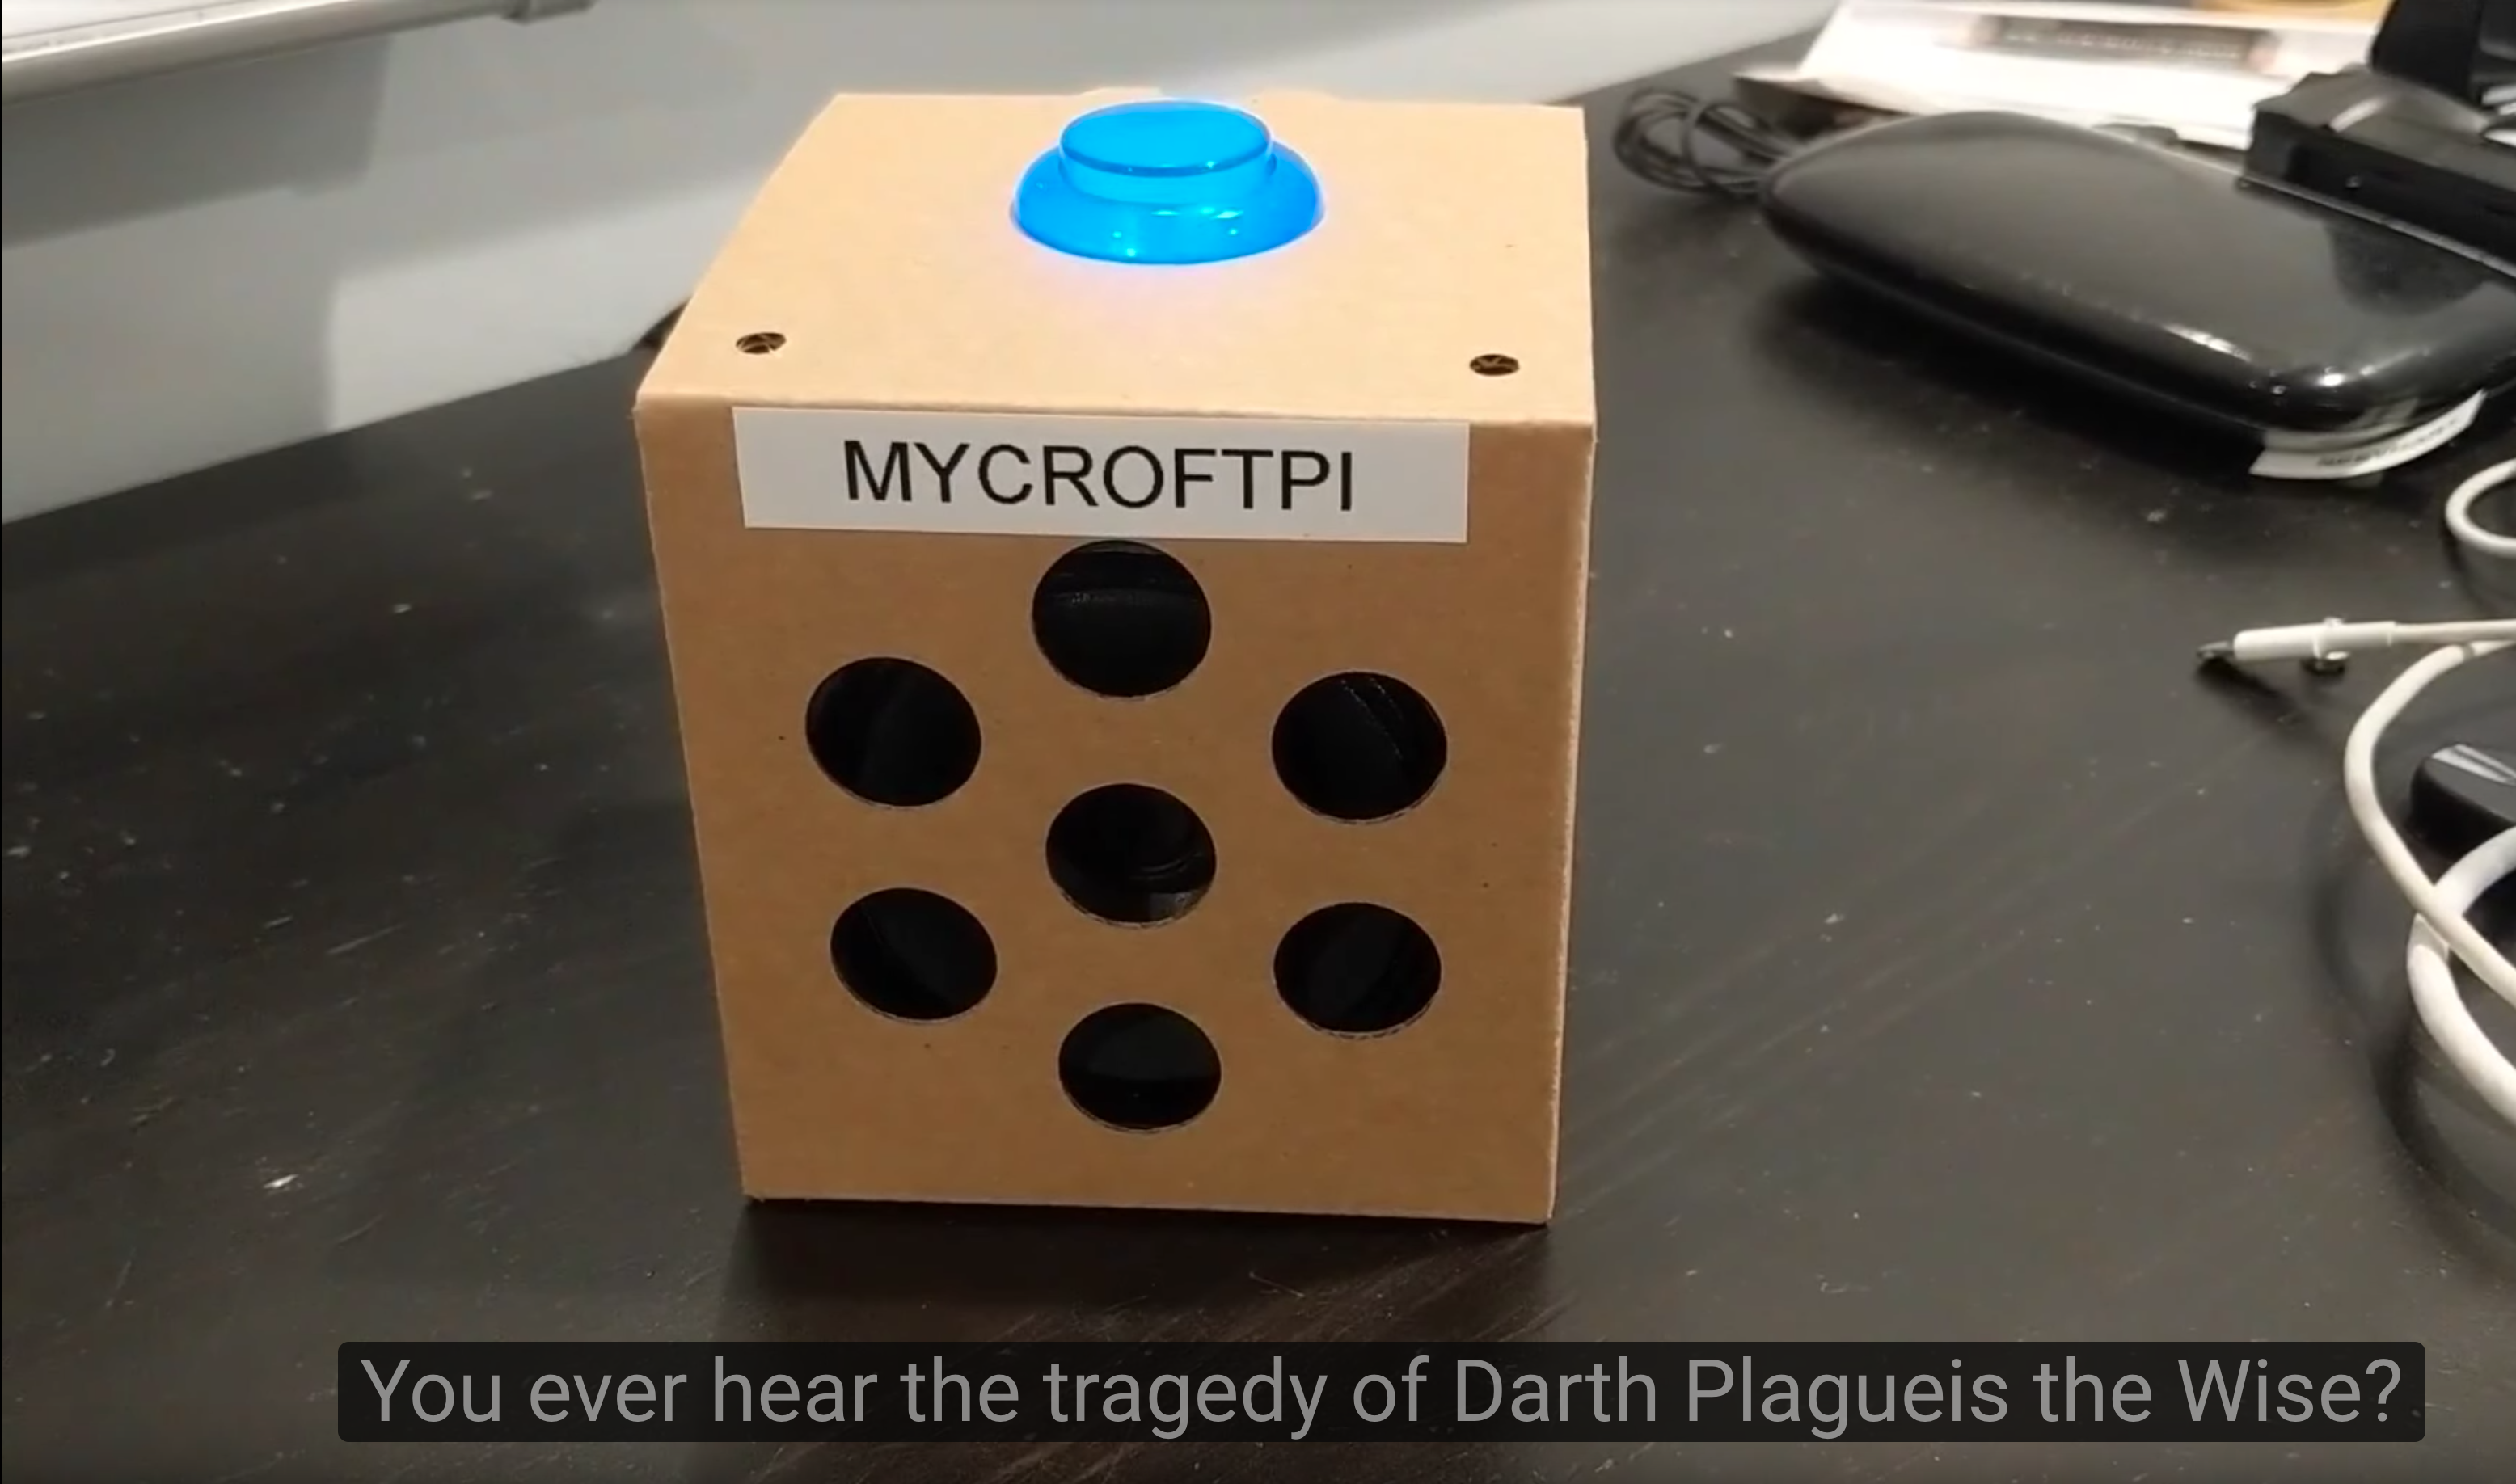 Making a Skill for Mycroft - the open source voice assistant